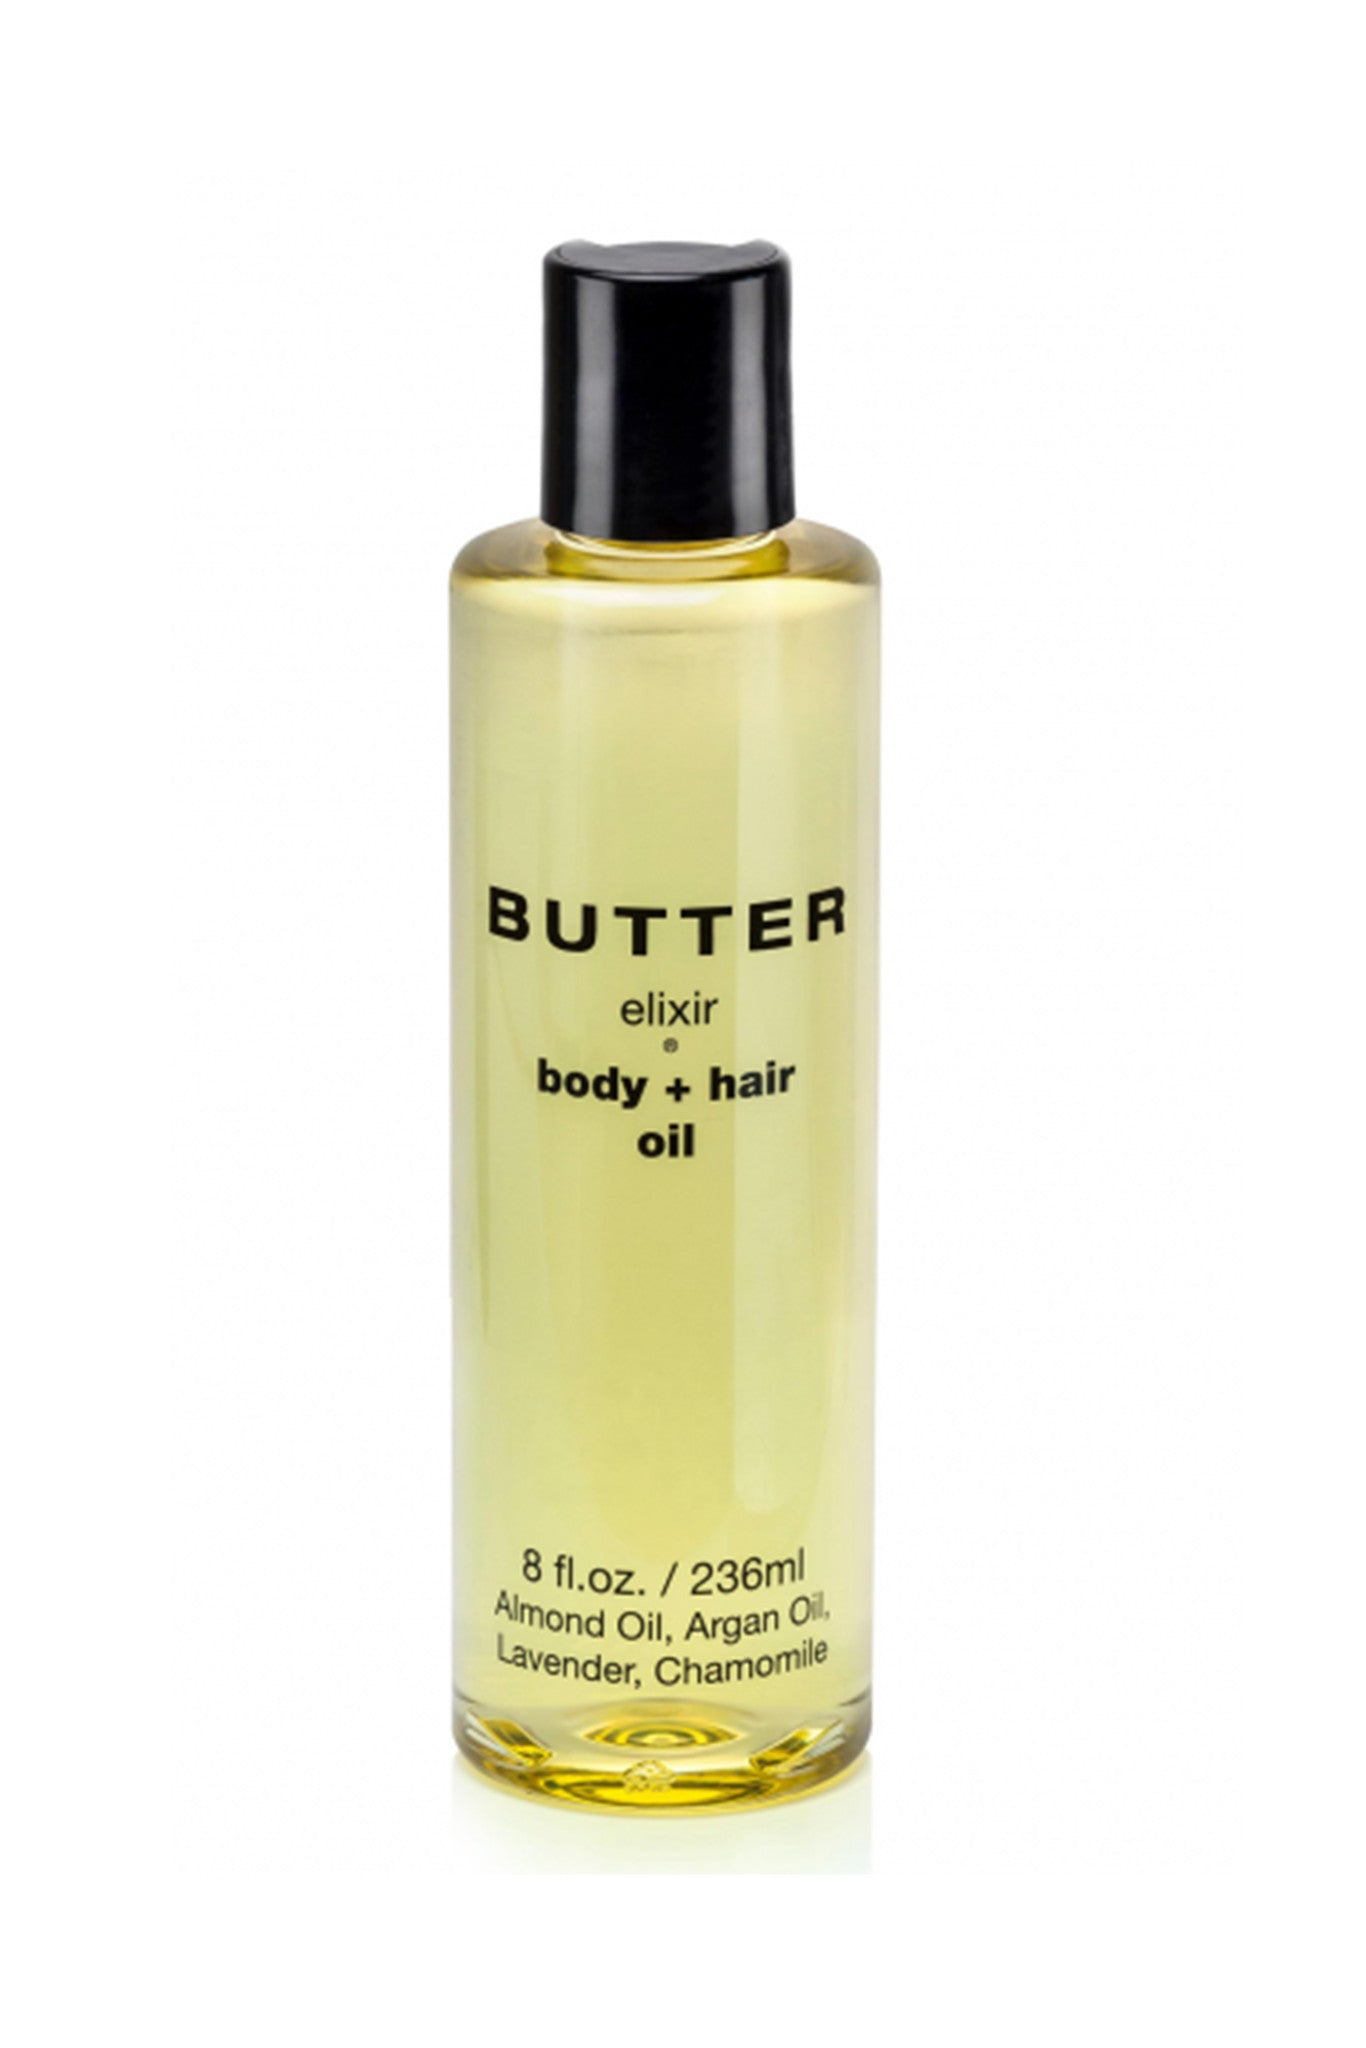 BUTTERelixir Body + Hair Oil 8 oz